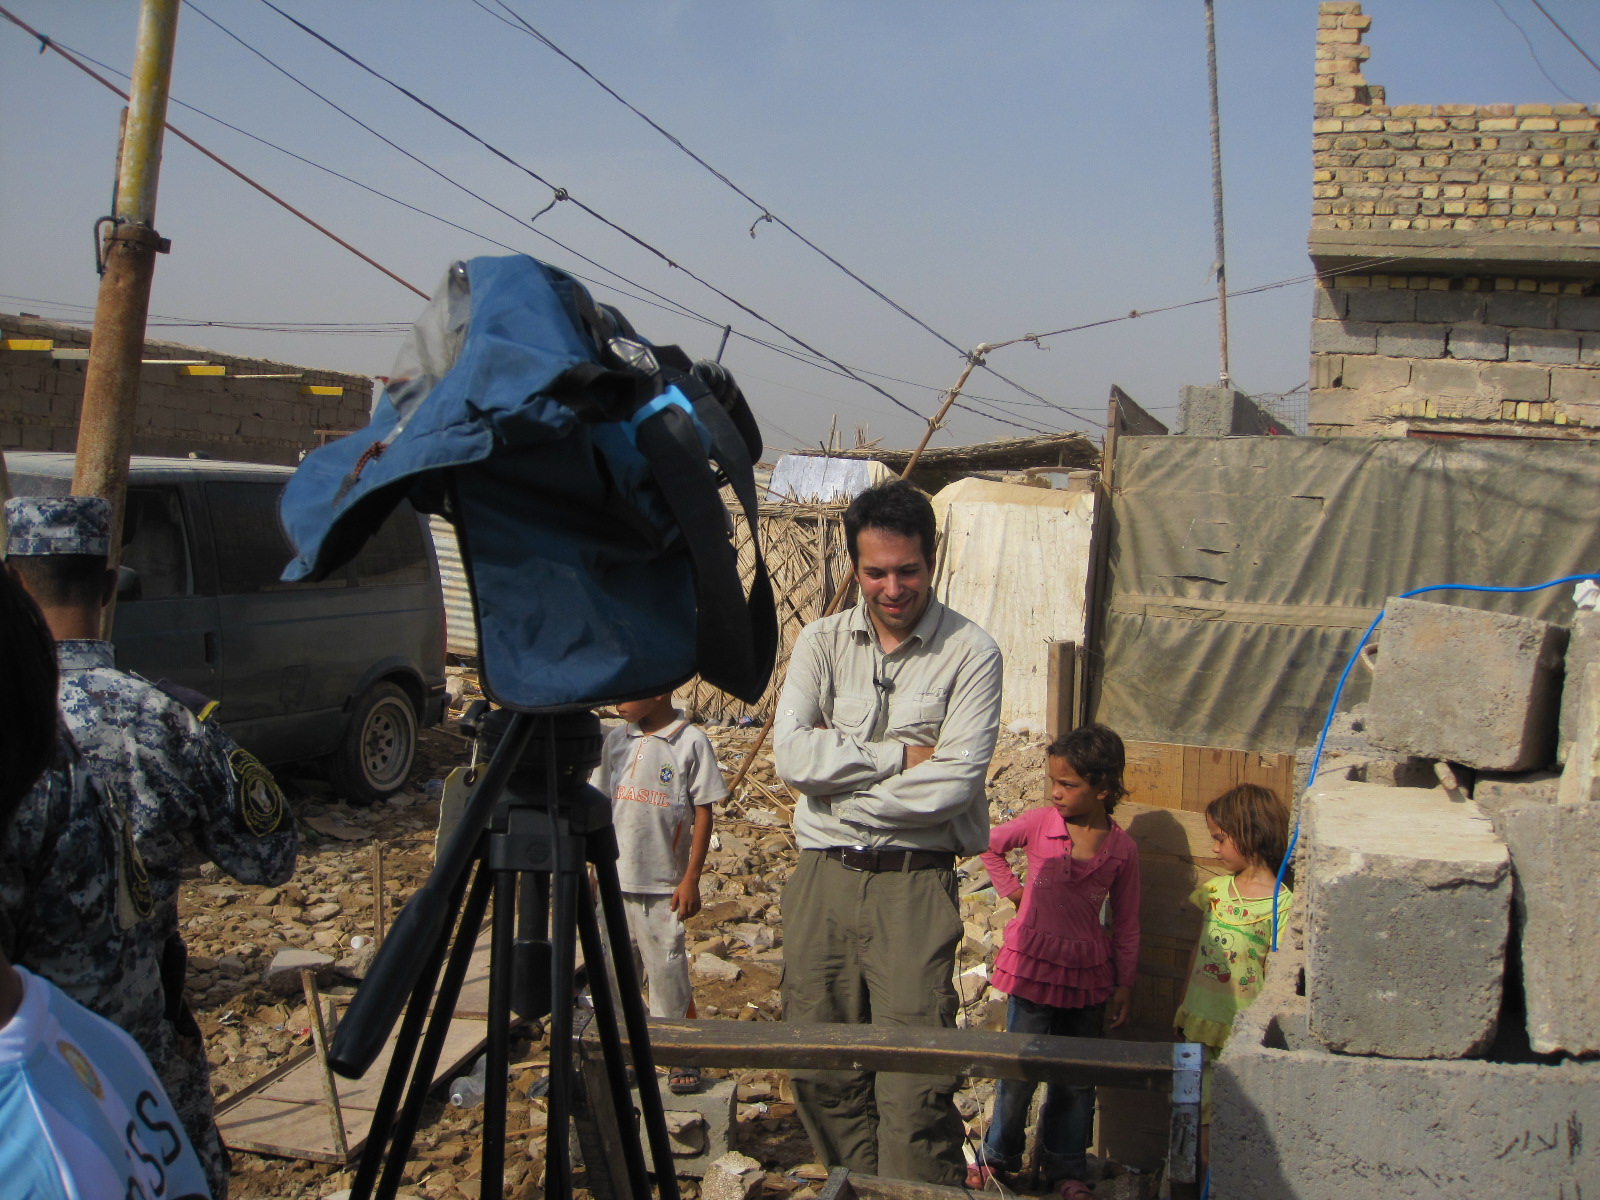 Live report from Baghdad, Iraq 2010